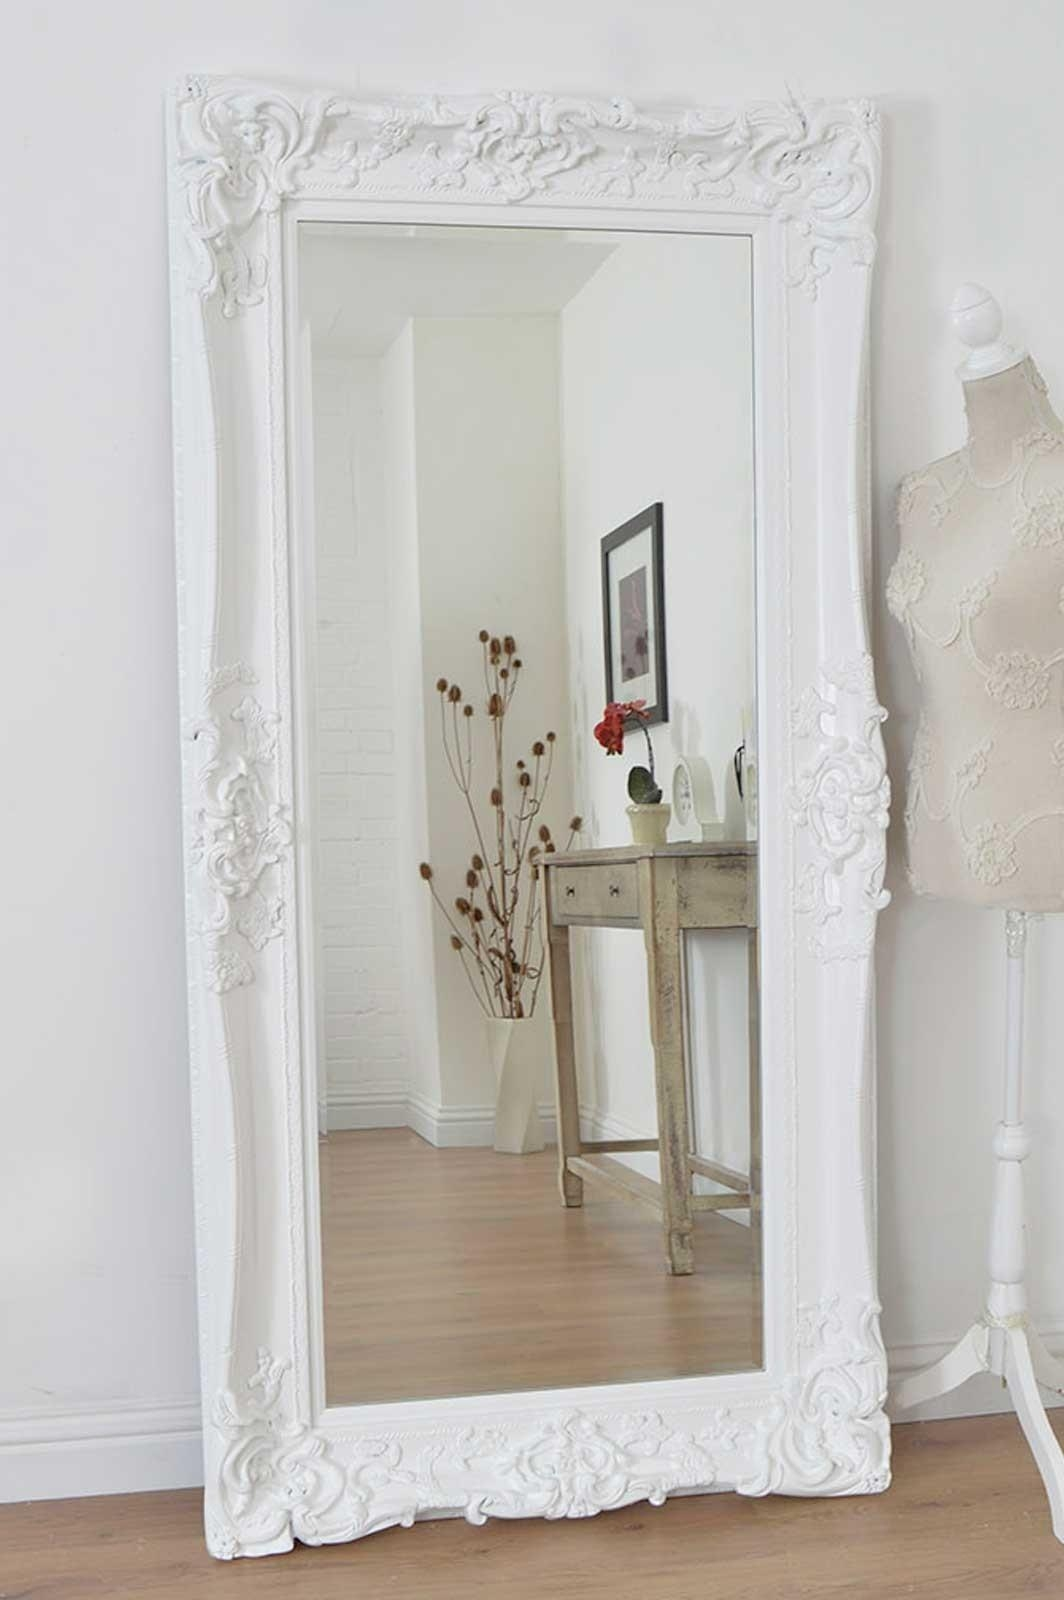 White Floor Length Mirror 127 Awesome Exterior With Wooden Floor Inside Ornate Full Length Mirror (Image 20 of 20)